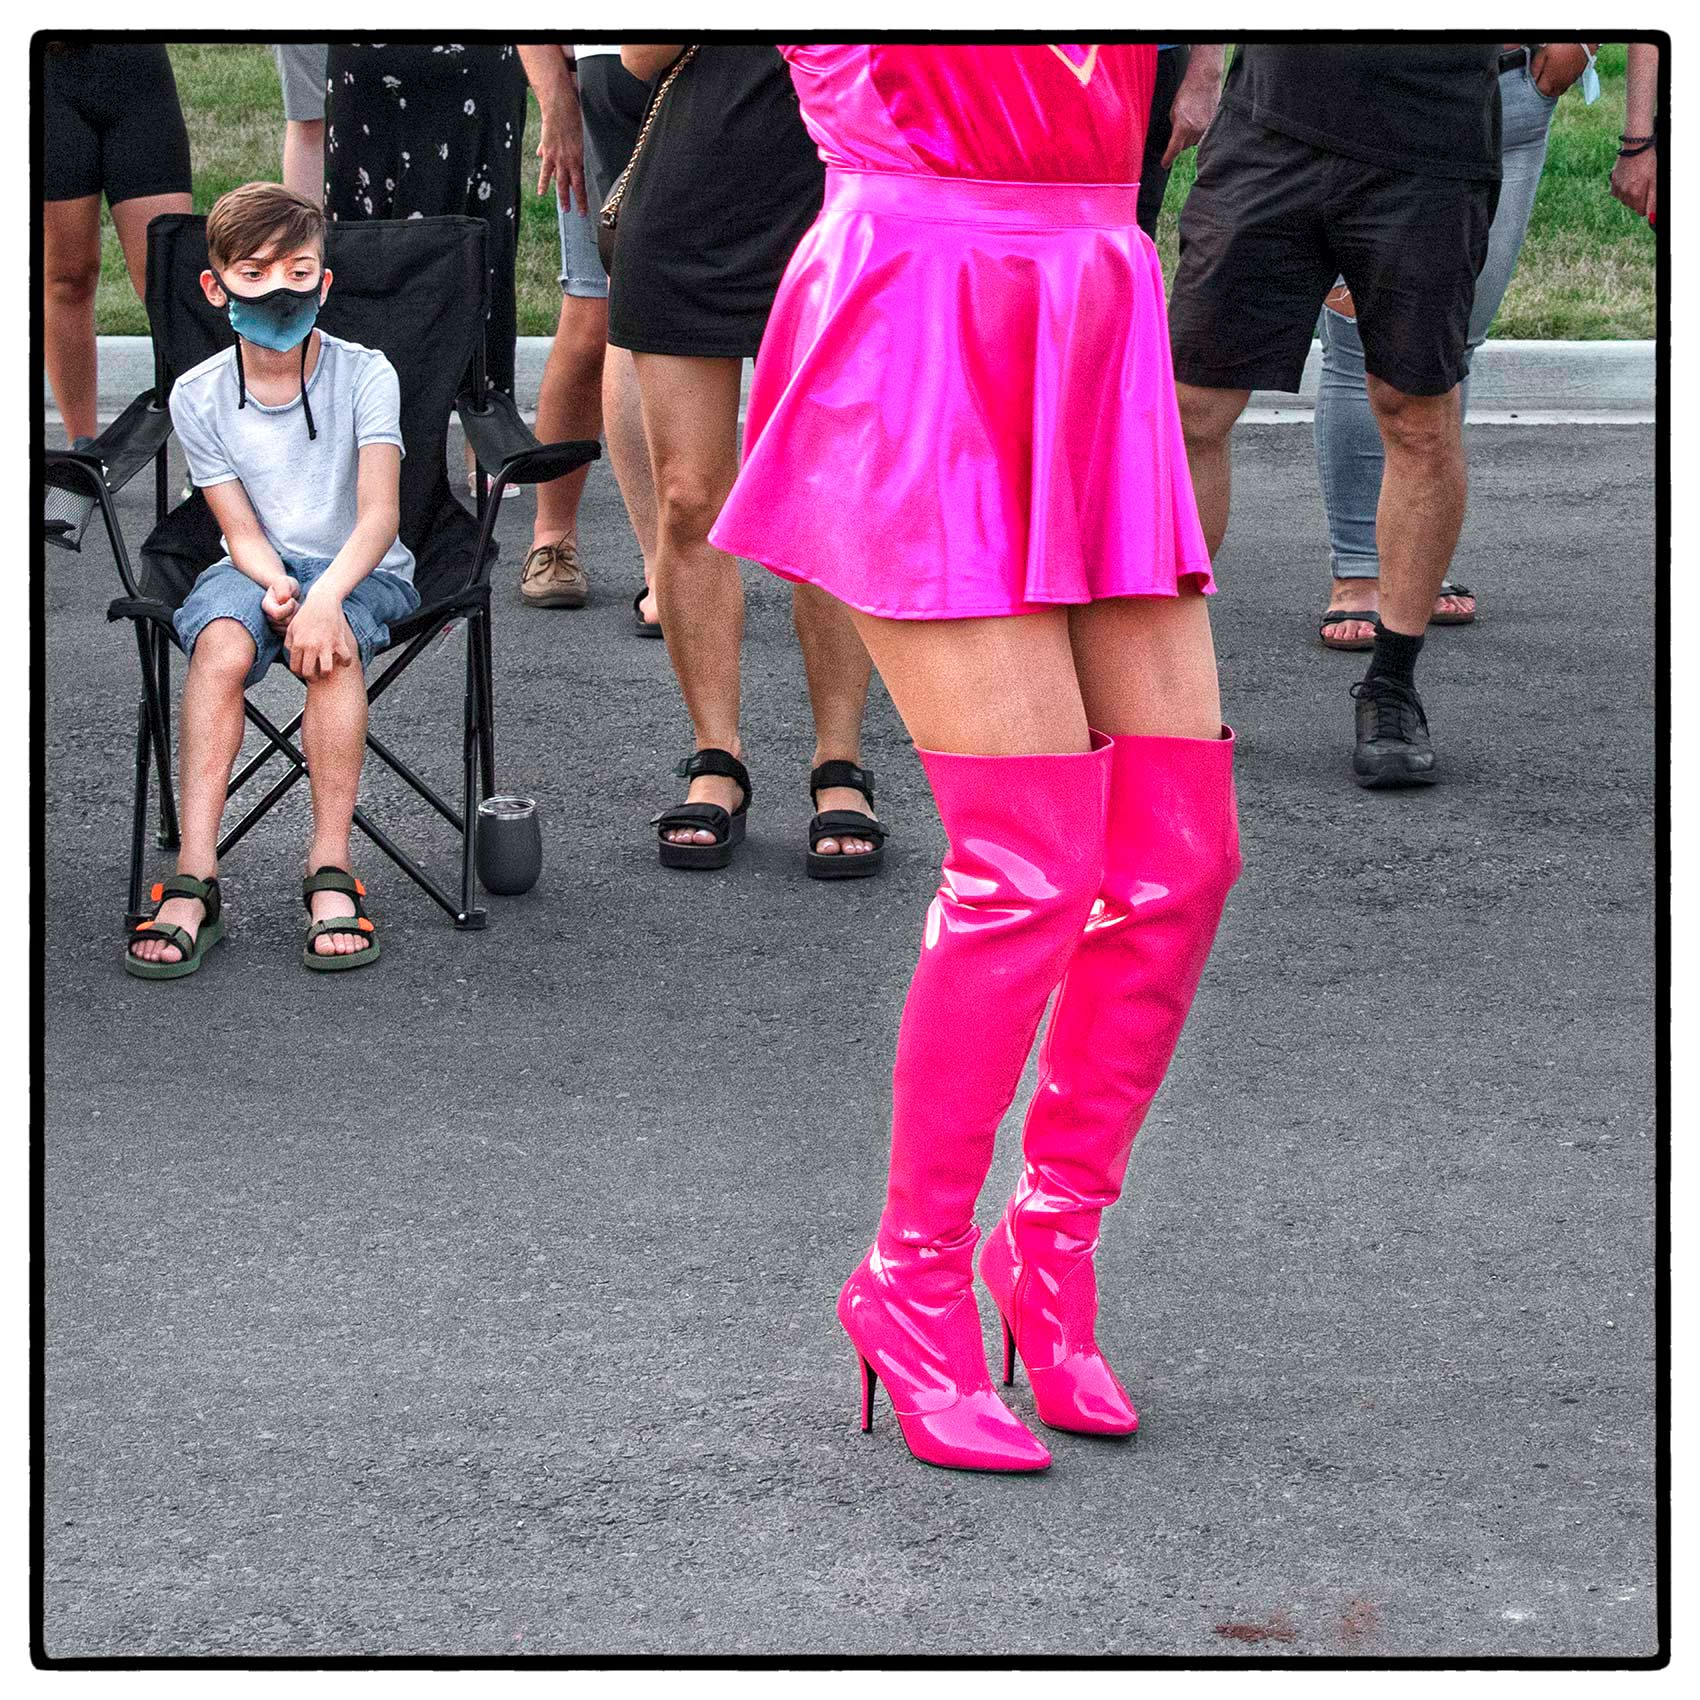 A young boy stares a drag queen by Toronto editorial photographer John Hryniuk